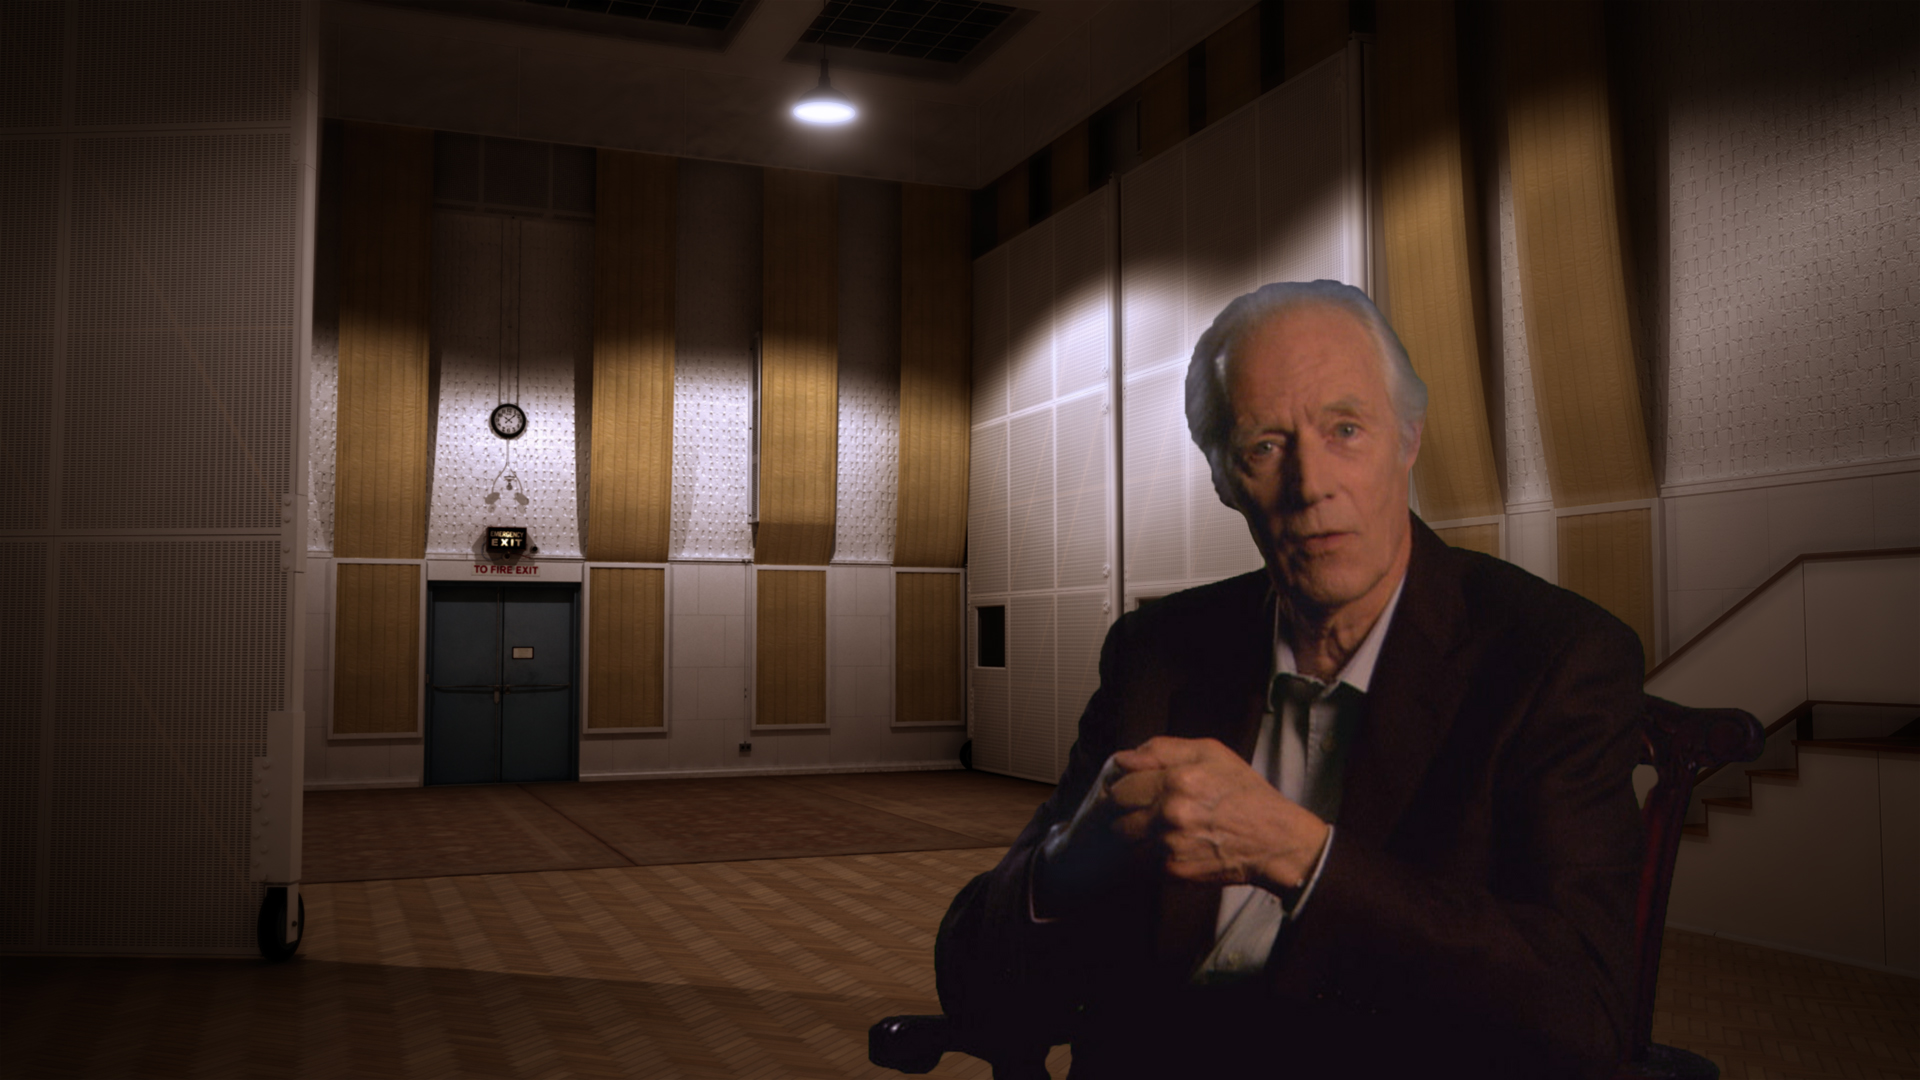 Sir George Martin green screen - CG Abbey Rd Studio #1 circa 1964 modeled in 3D Max, and rendered with V-Ray. For the PBS documentary Soundbreaking: The History of Recorded Music.